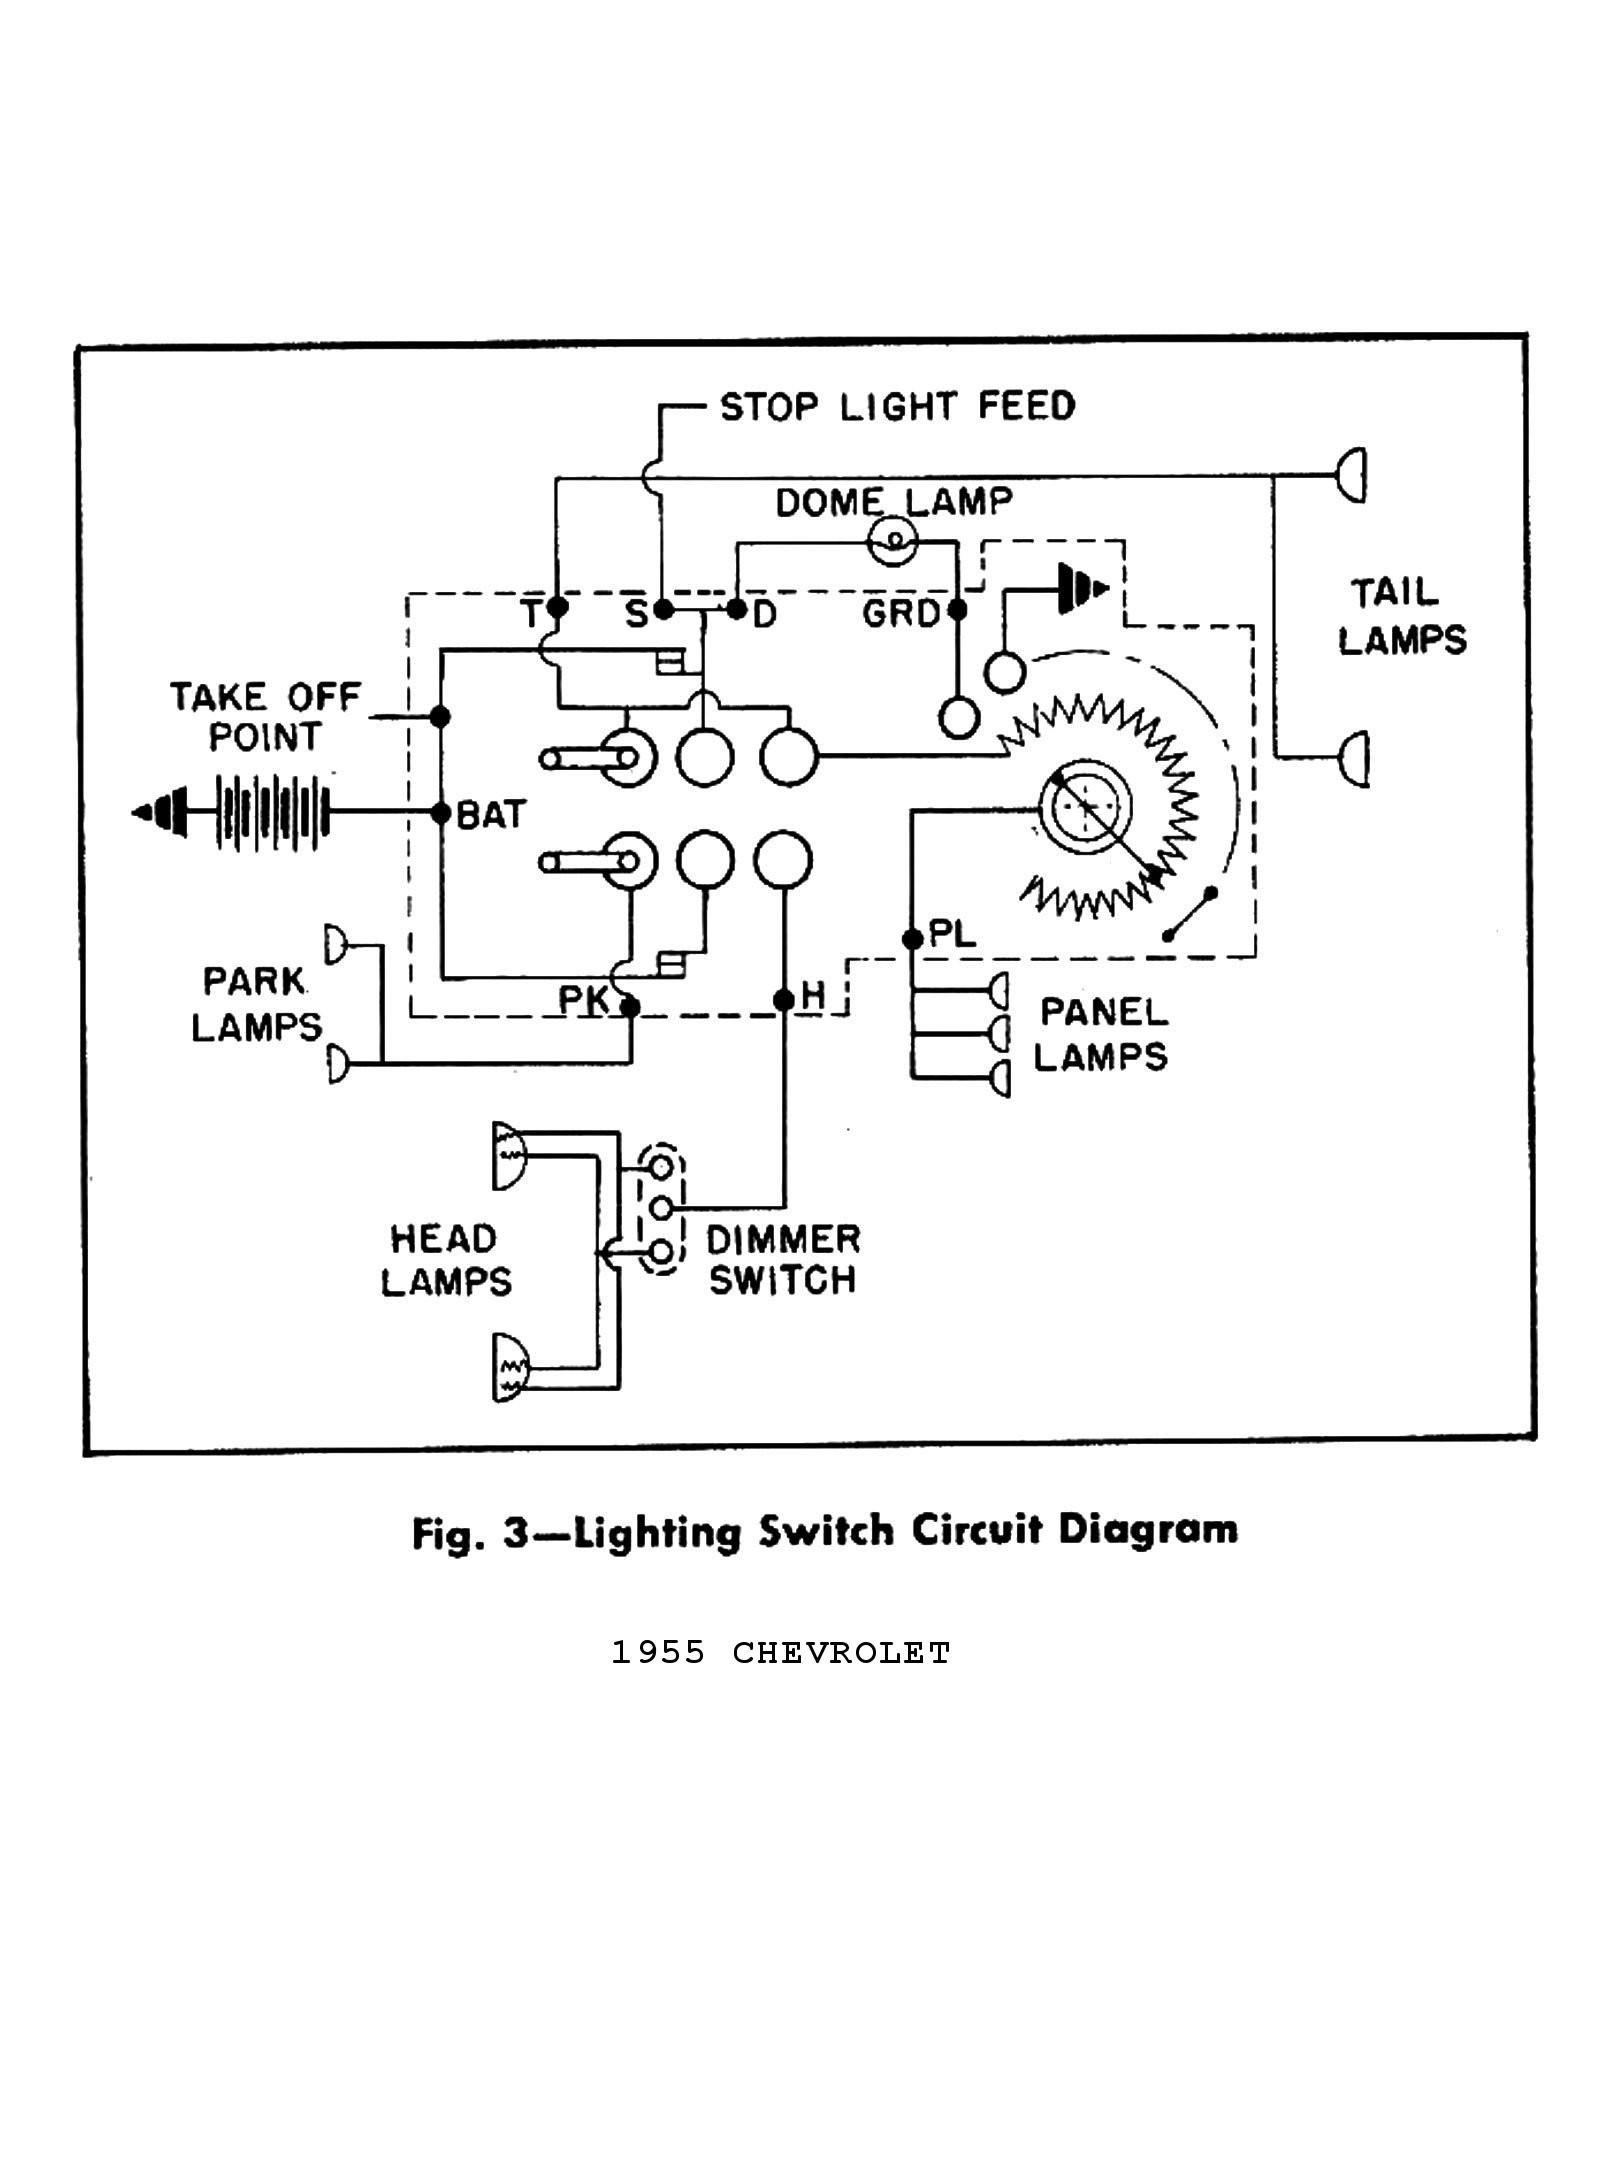 1976 Ford 3000 Wiring Diagram Bgmt Data \u2022 Ford F-150 Wire Harness  Diagrams Ford 3000 Wire Harness Diagram